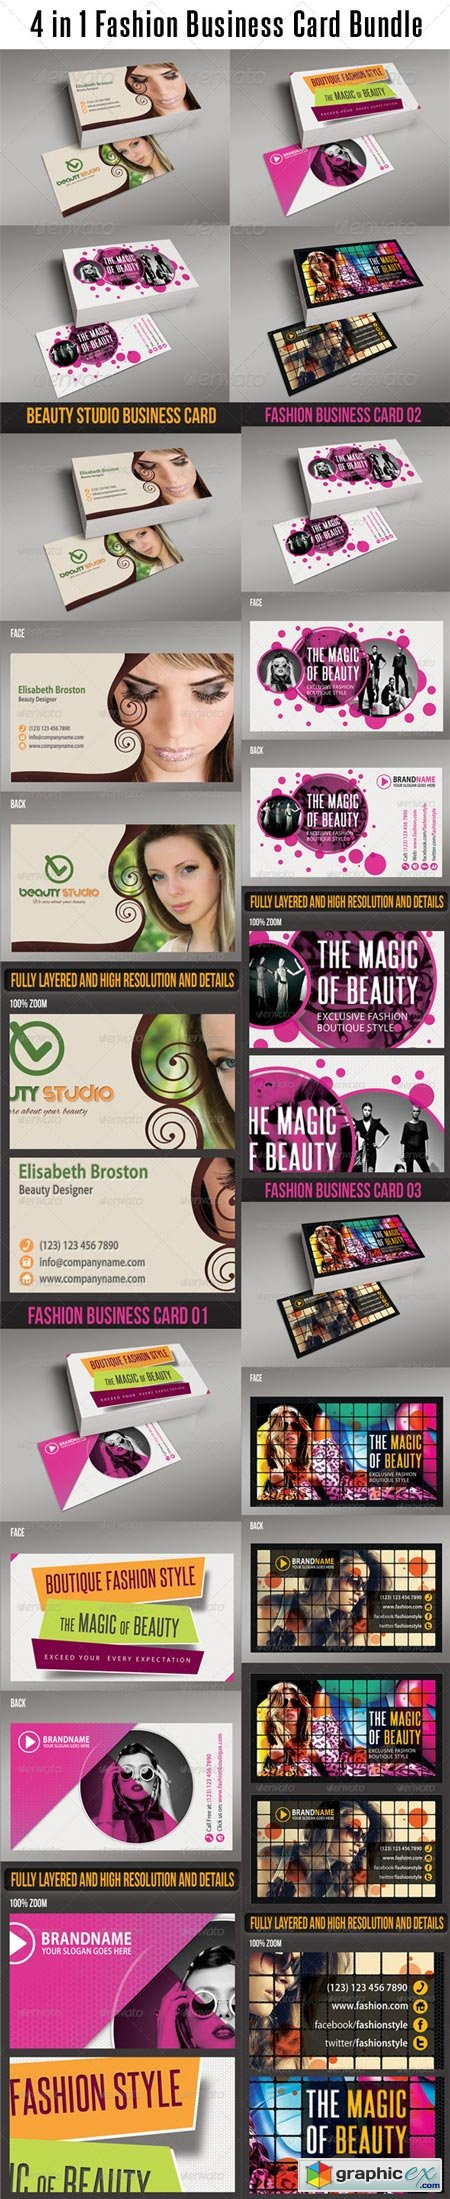 4 in 1 Fashion Business Card Bundle